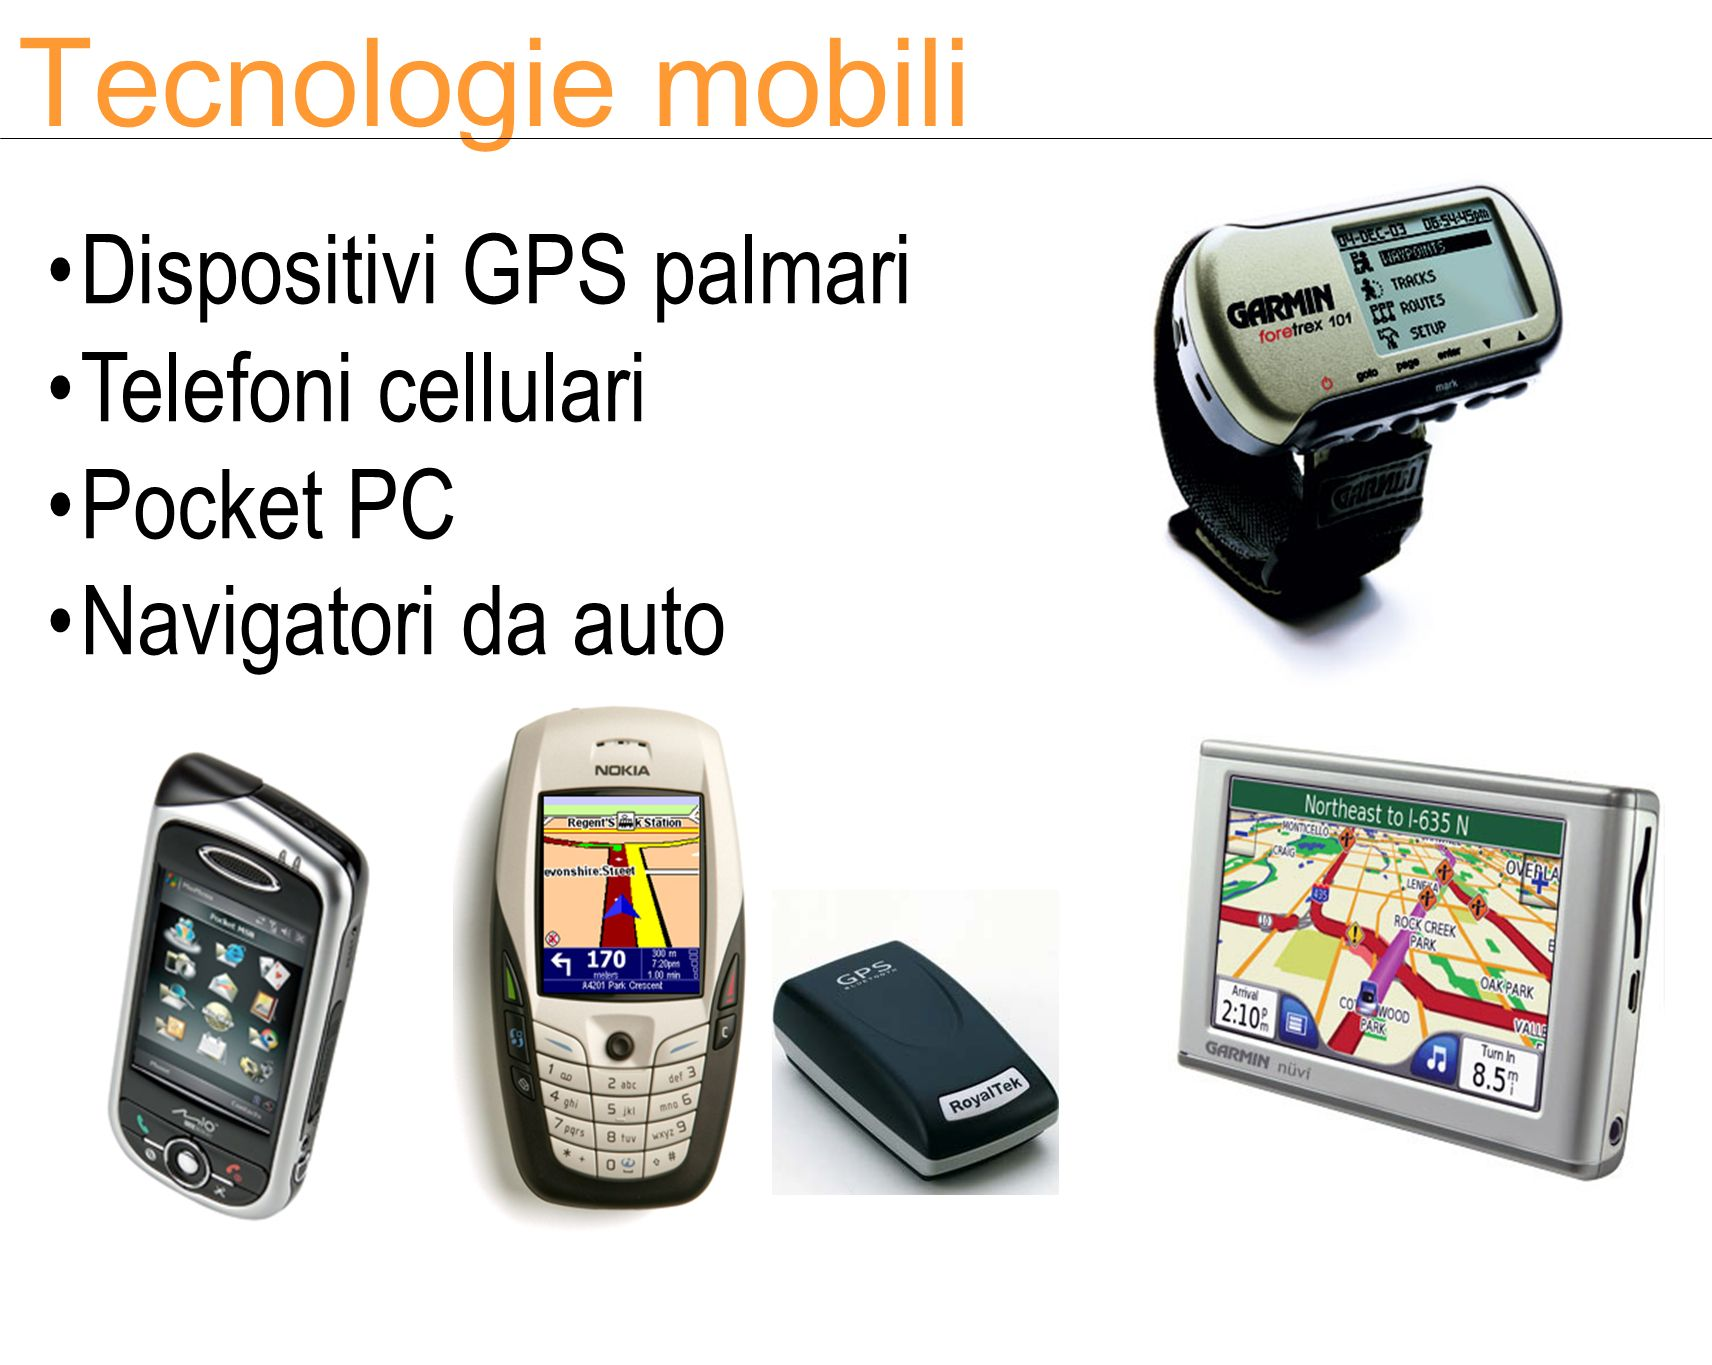 Tecnologie mobili Dispositivi GPS palmari Telefoni cellulari Pocket PC